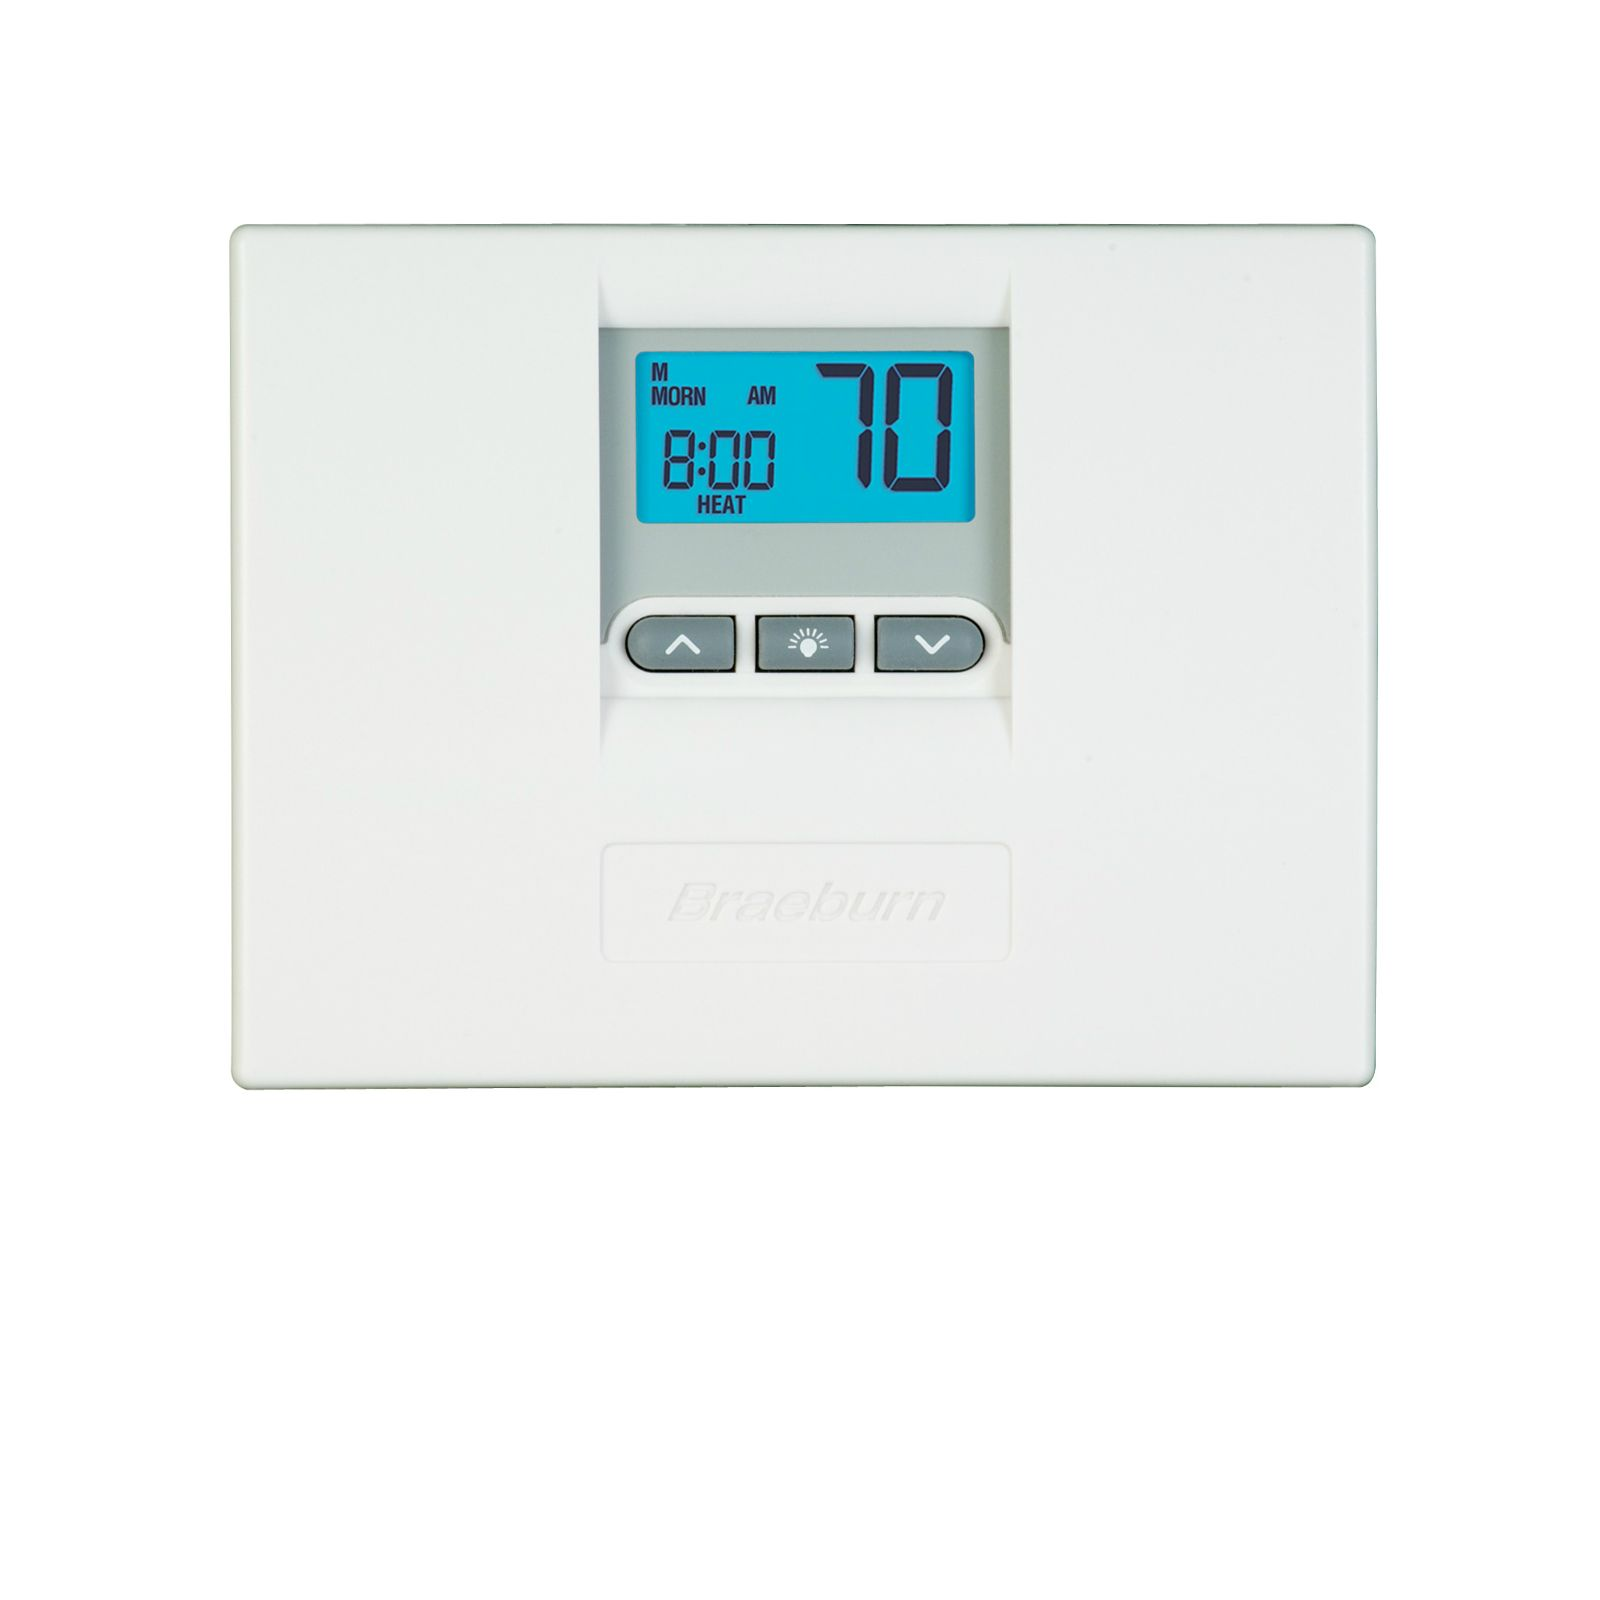 Braeburn 2000 - Builder Value 5-2 Day Programmable Thermostat 2 Heat/1 Cool